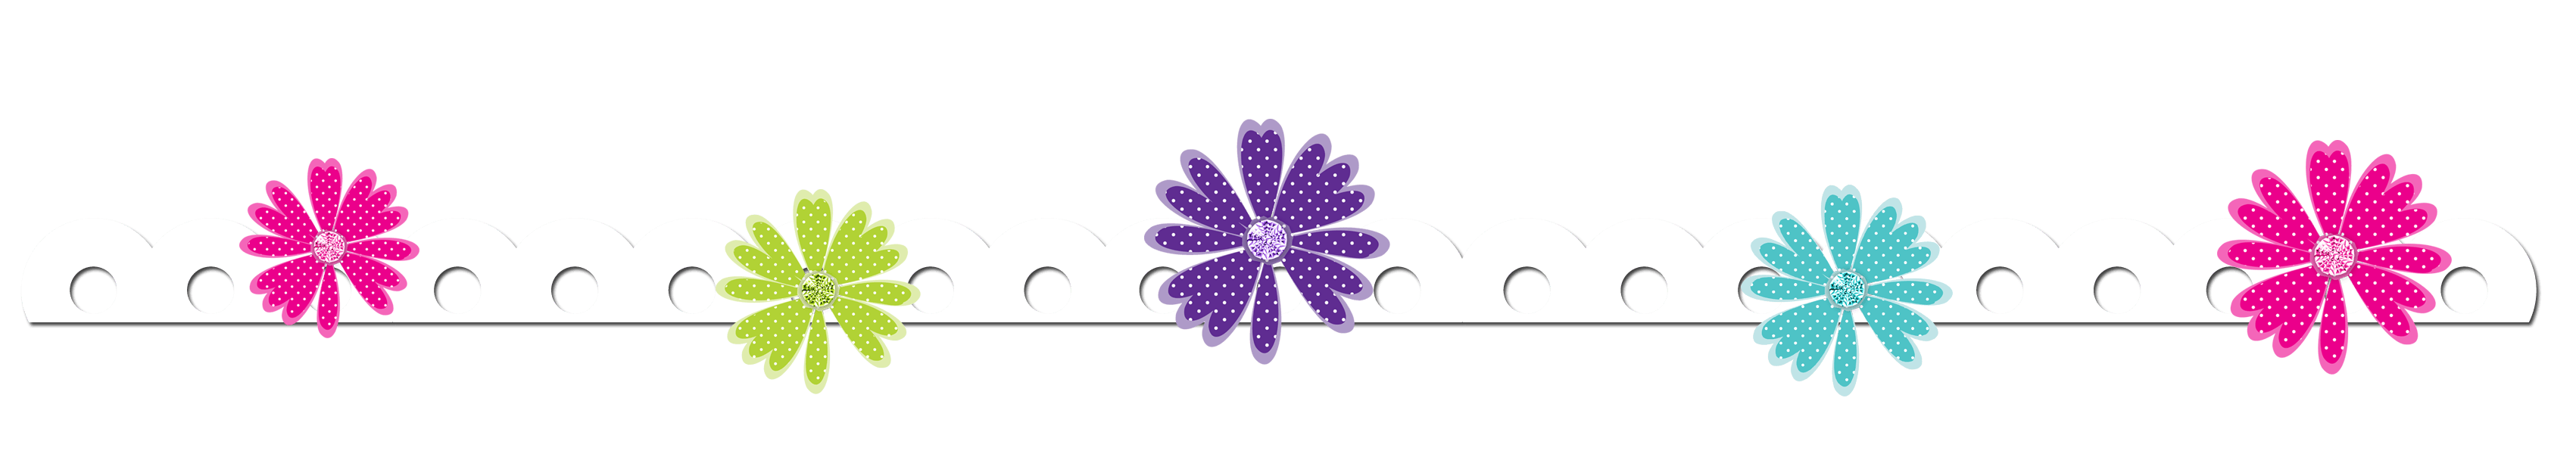 Free Border Cliparts Flower, Download Free Clip Art, Free.